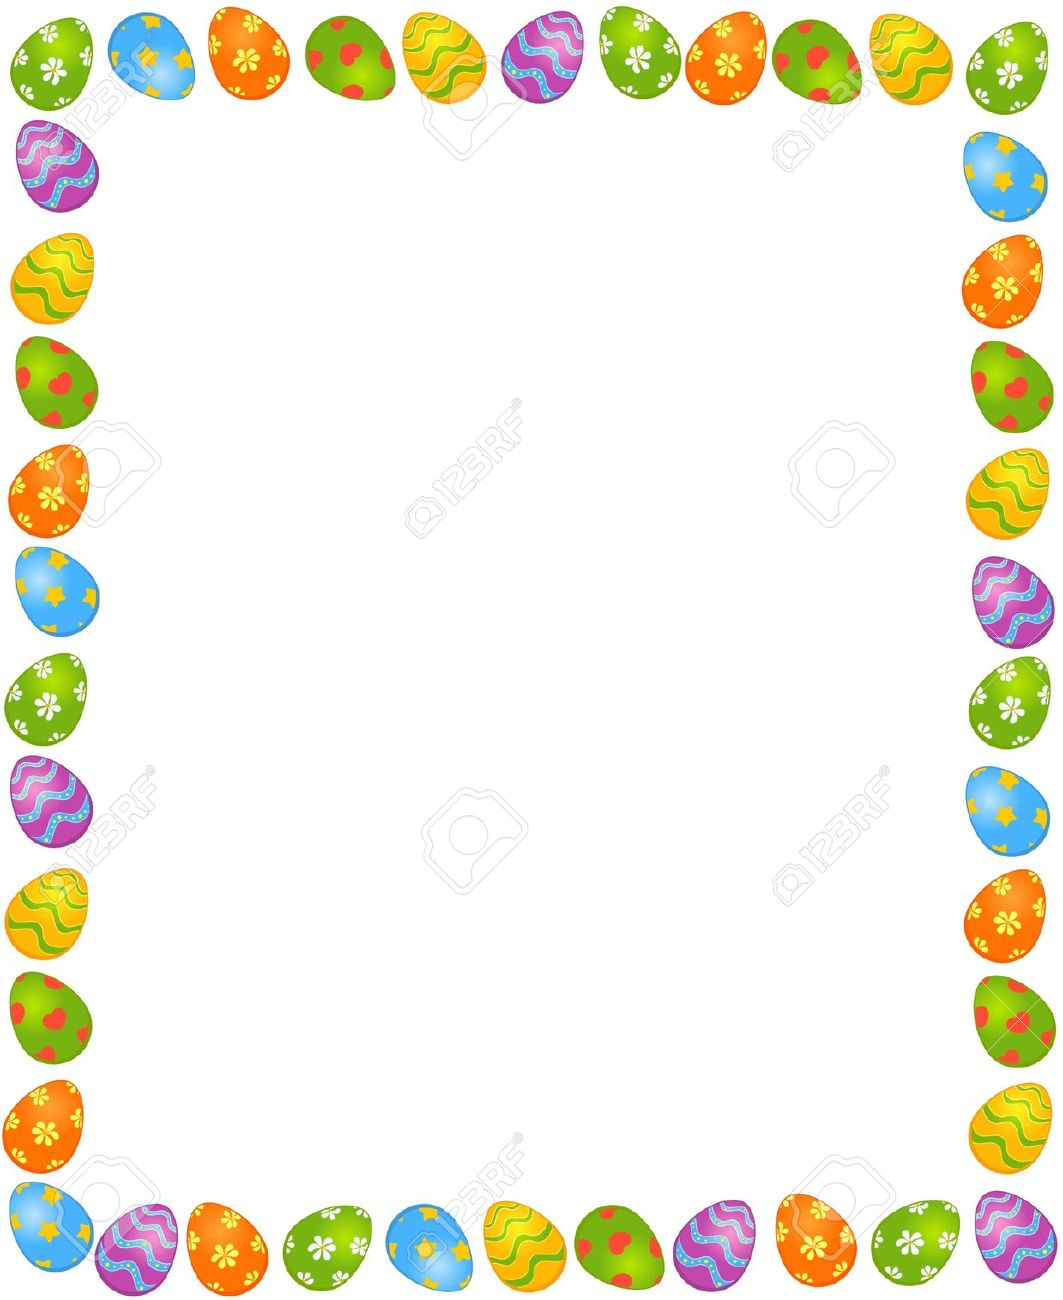 Easter corner clipart banner stock Collection Easter Borders Free Pictures - Best easter gift ever banner stock